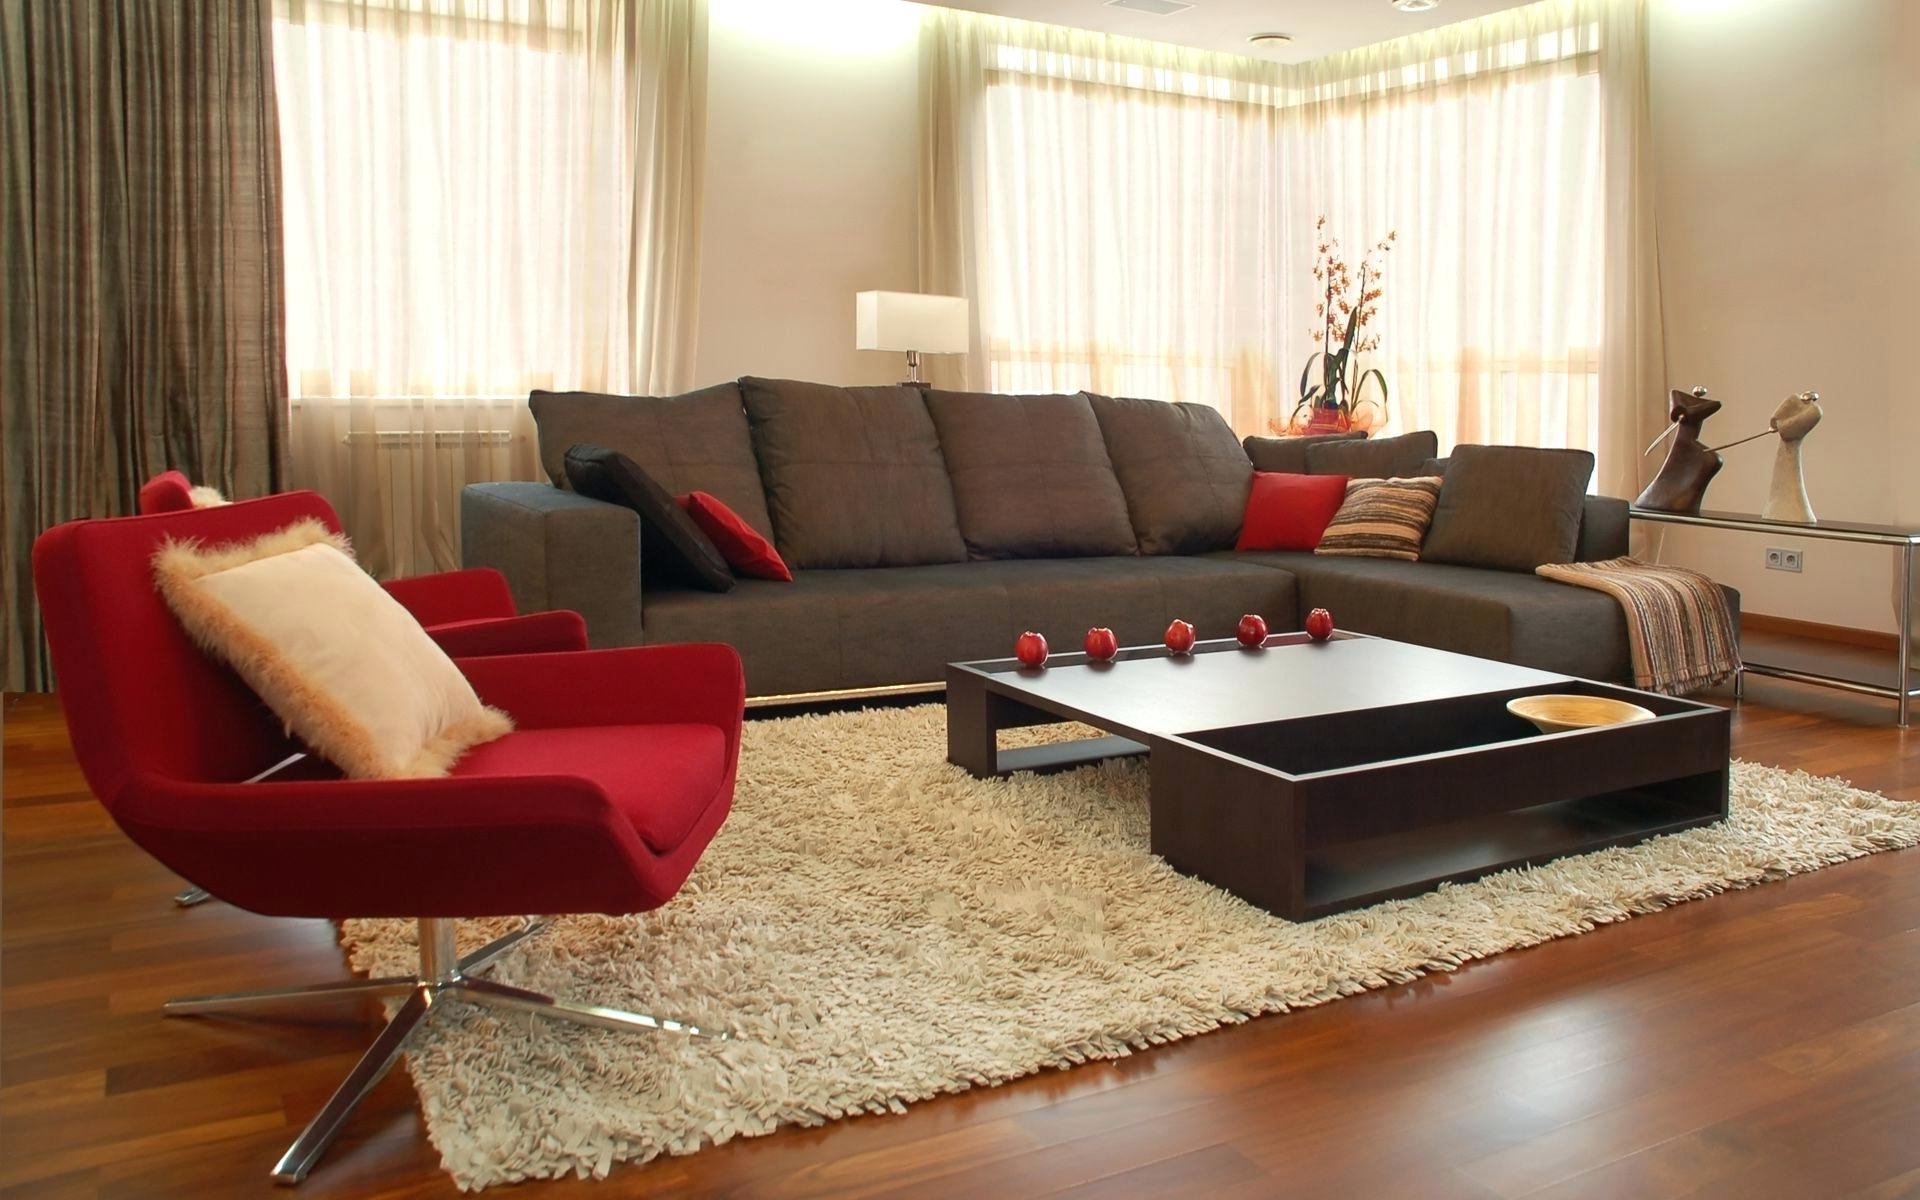 Well Known Red Chairs For Living Room Beautiful Corner Bench Living Room Design Pertaining To Red Sofas And Chairs (View 15 of 20)